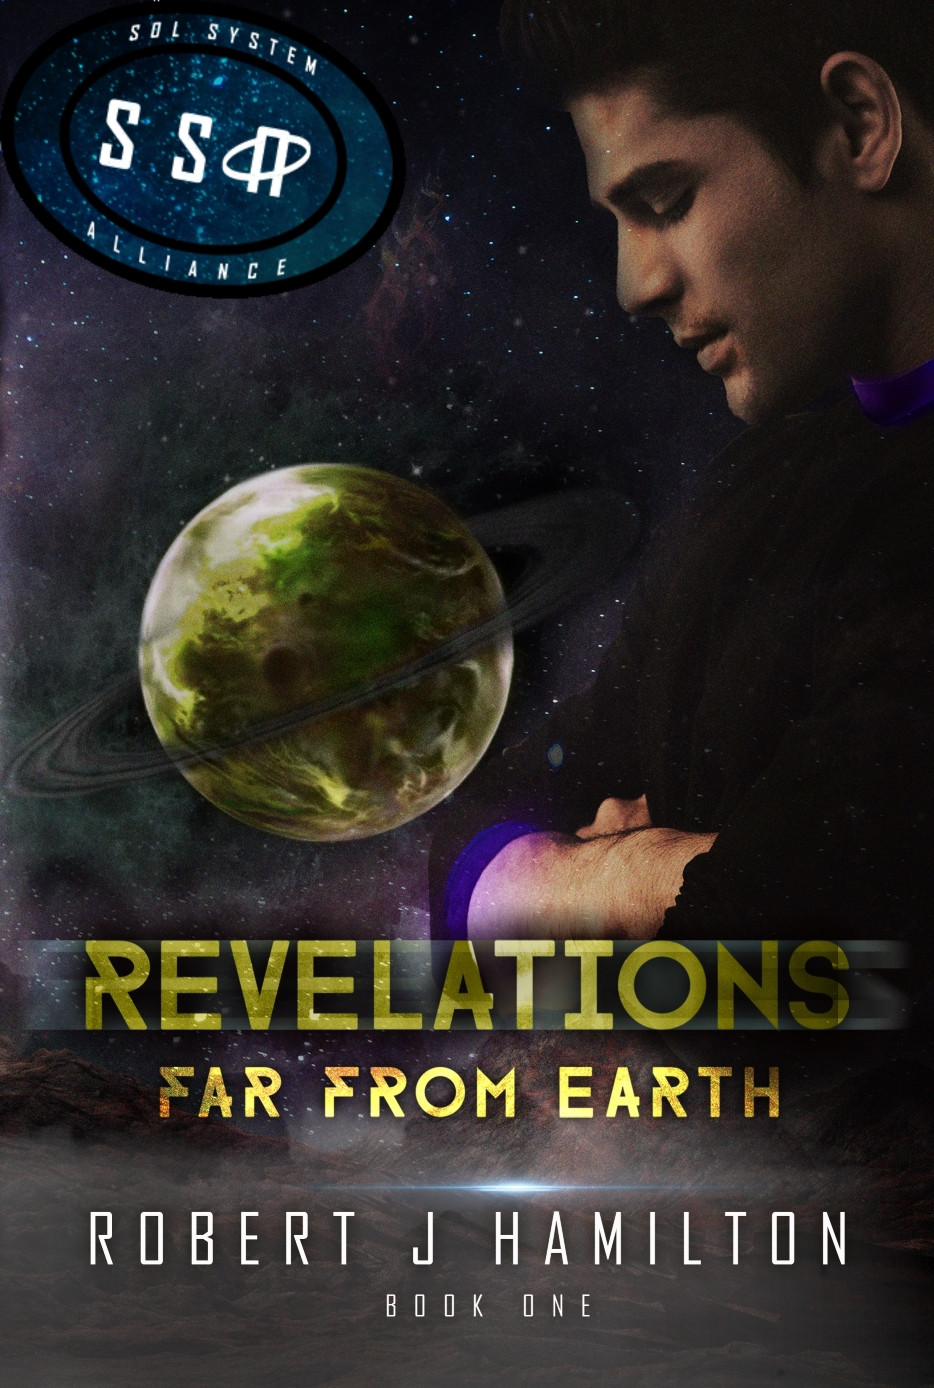 Buy the first book, Revelations - Far From Earth from Amazon